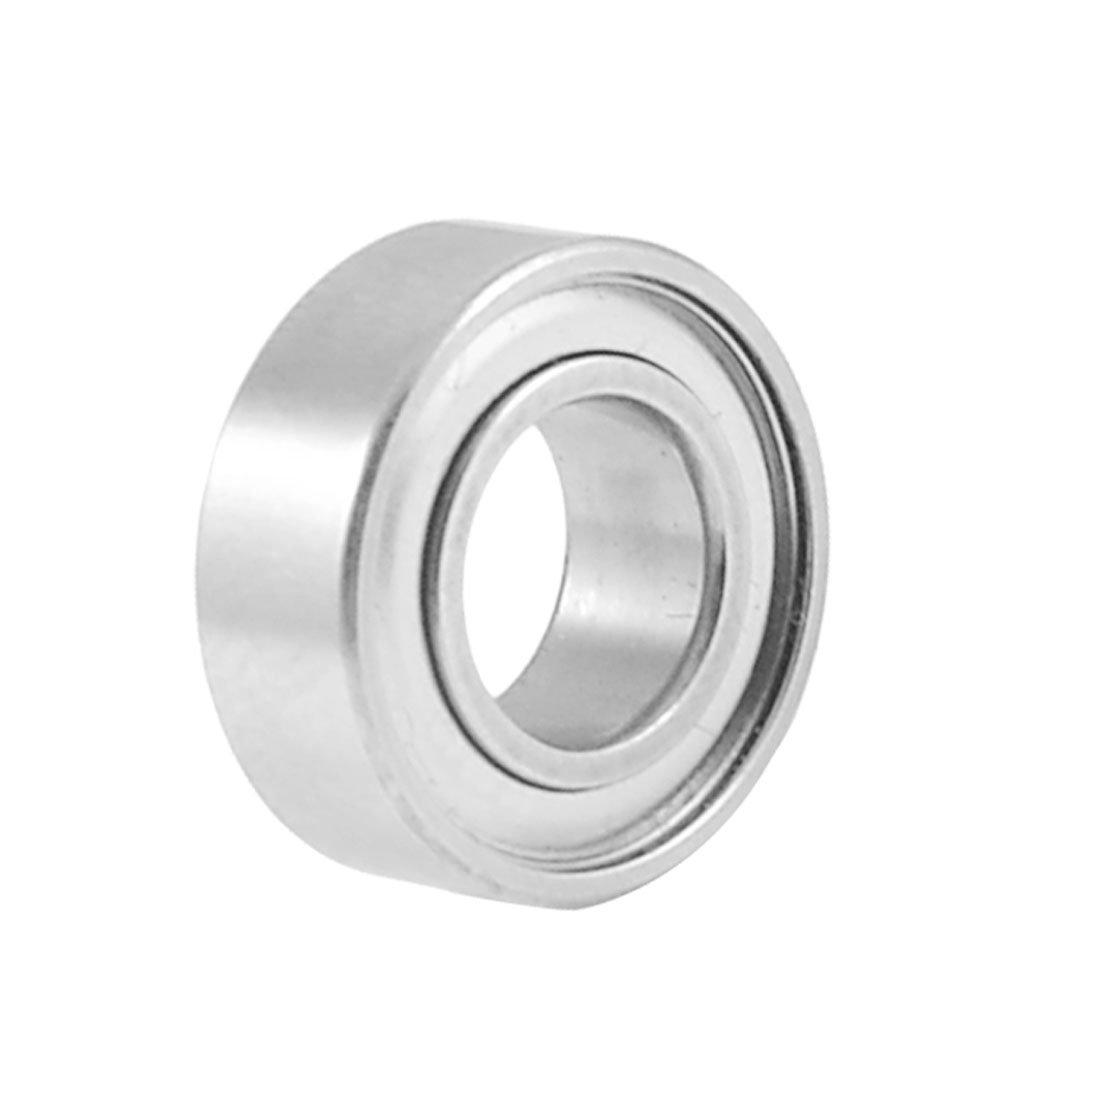 14mm x 7mm x 5mm Shielded Deep Groove Ball Shaft Bearing Silver Tone